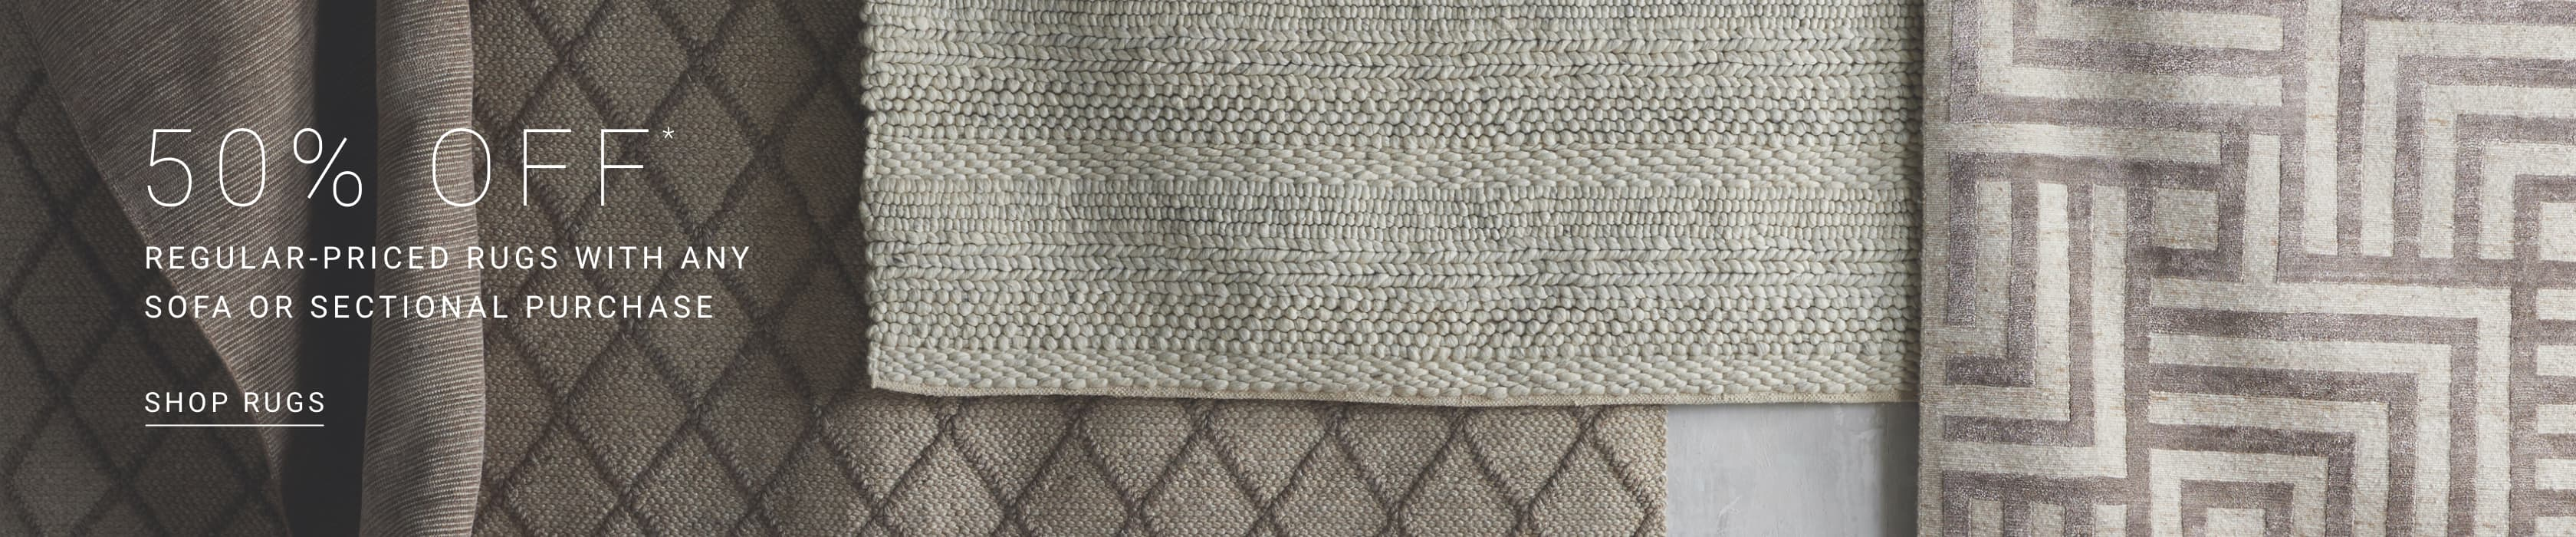 Save 50% on Rugs with the purchase of a sofa or sectional